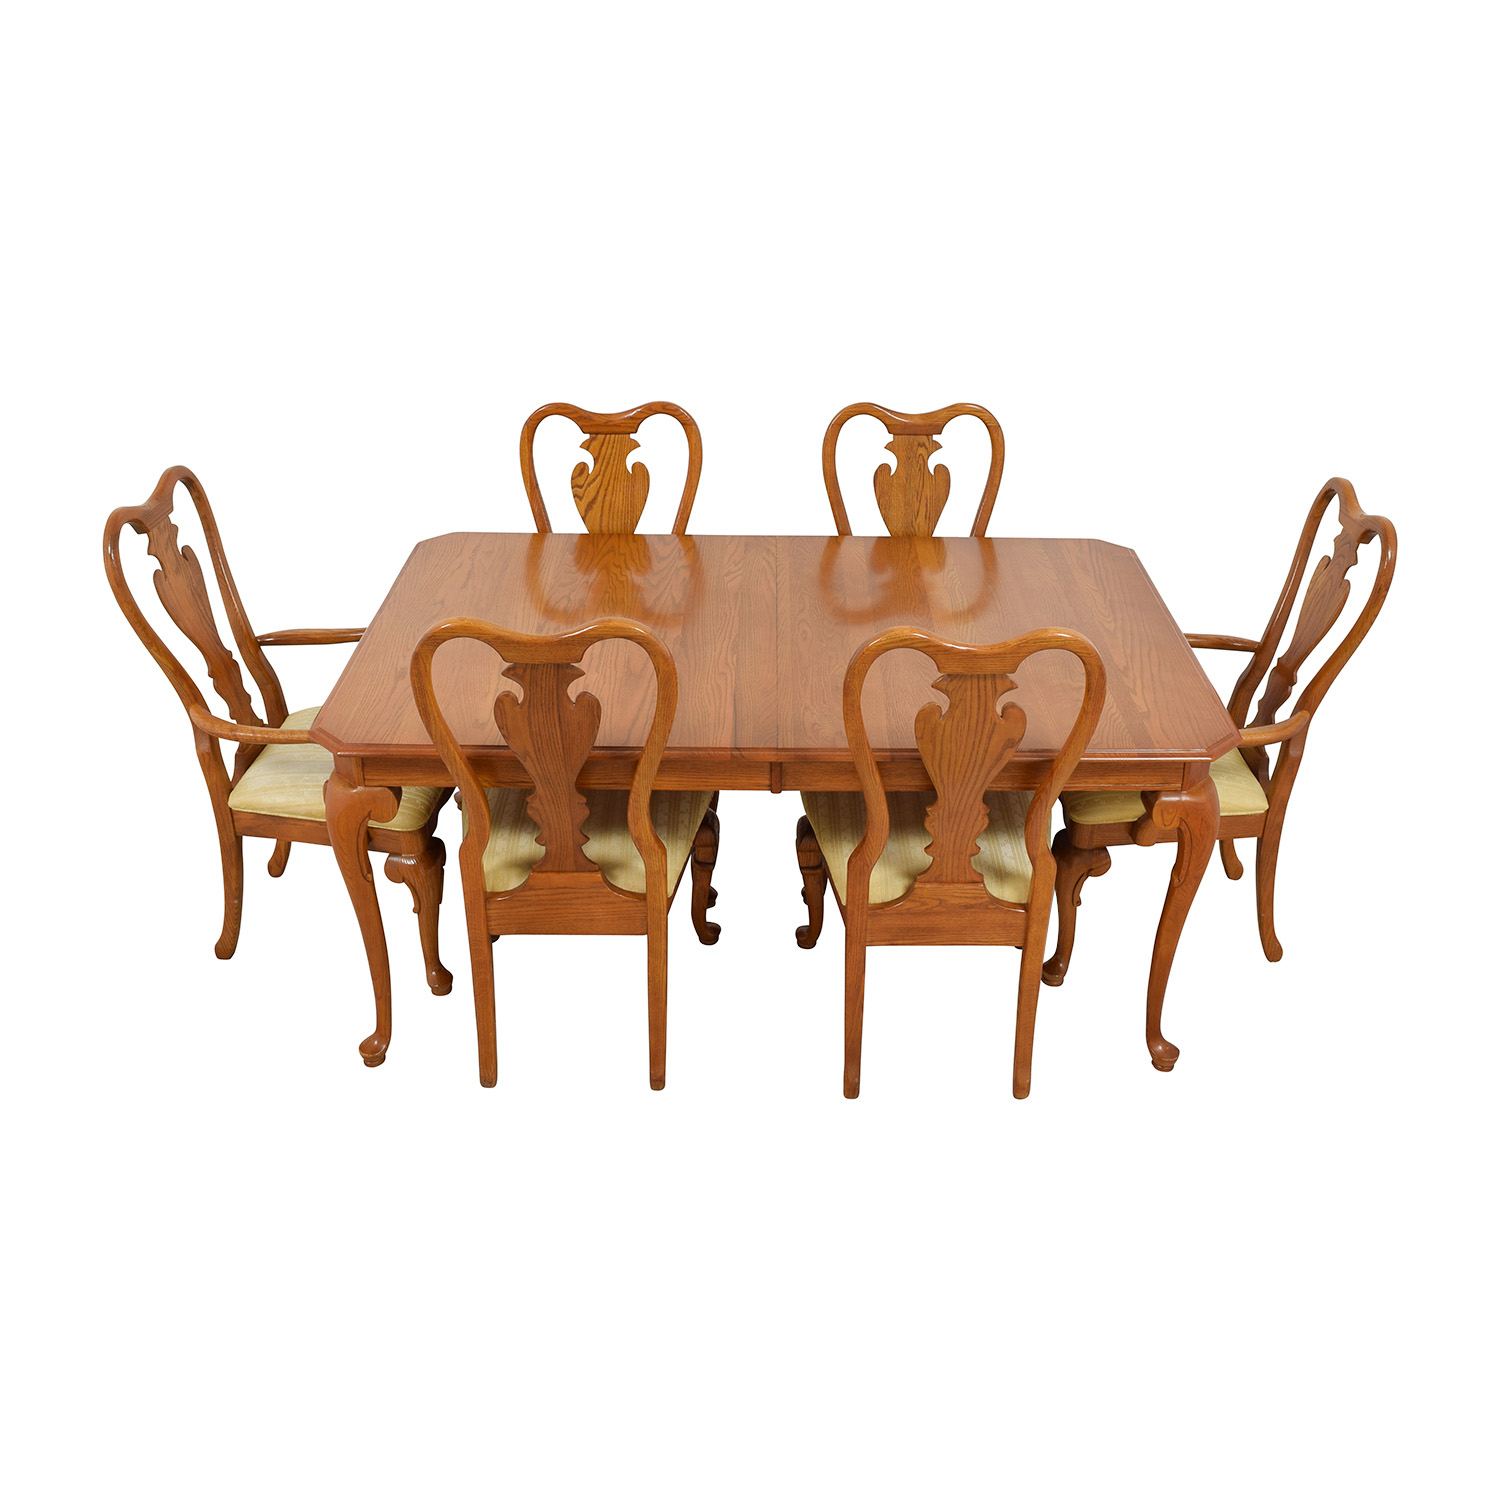 shop Classic Six-Piece Wooden Dining Set